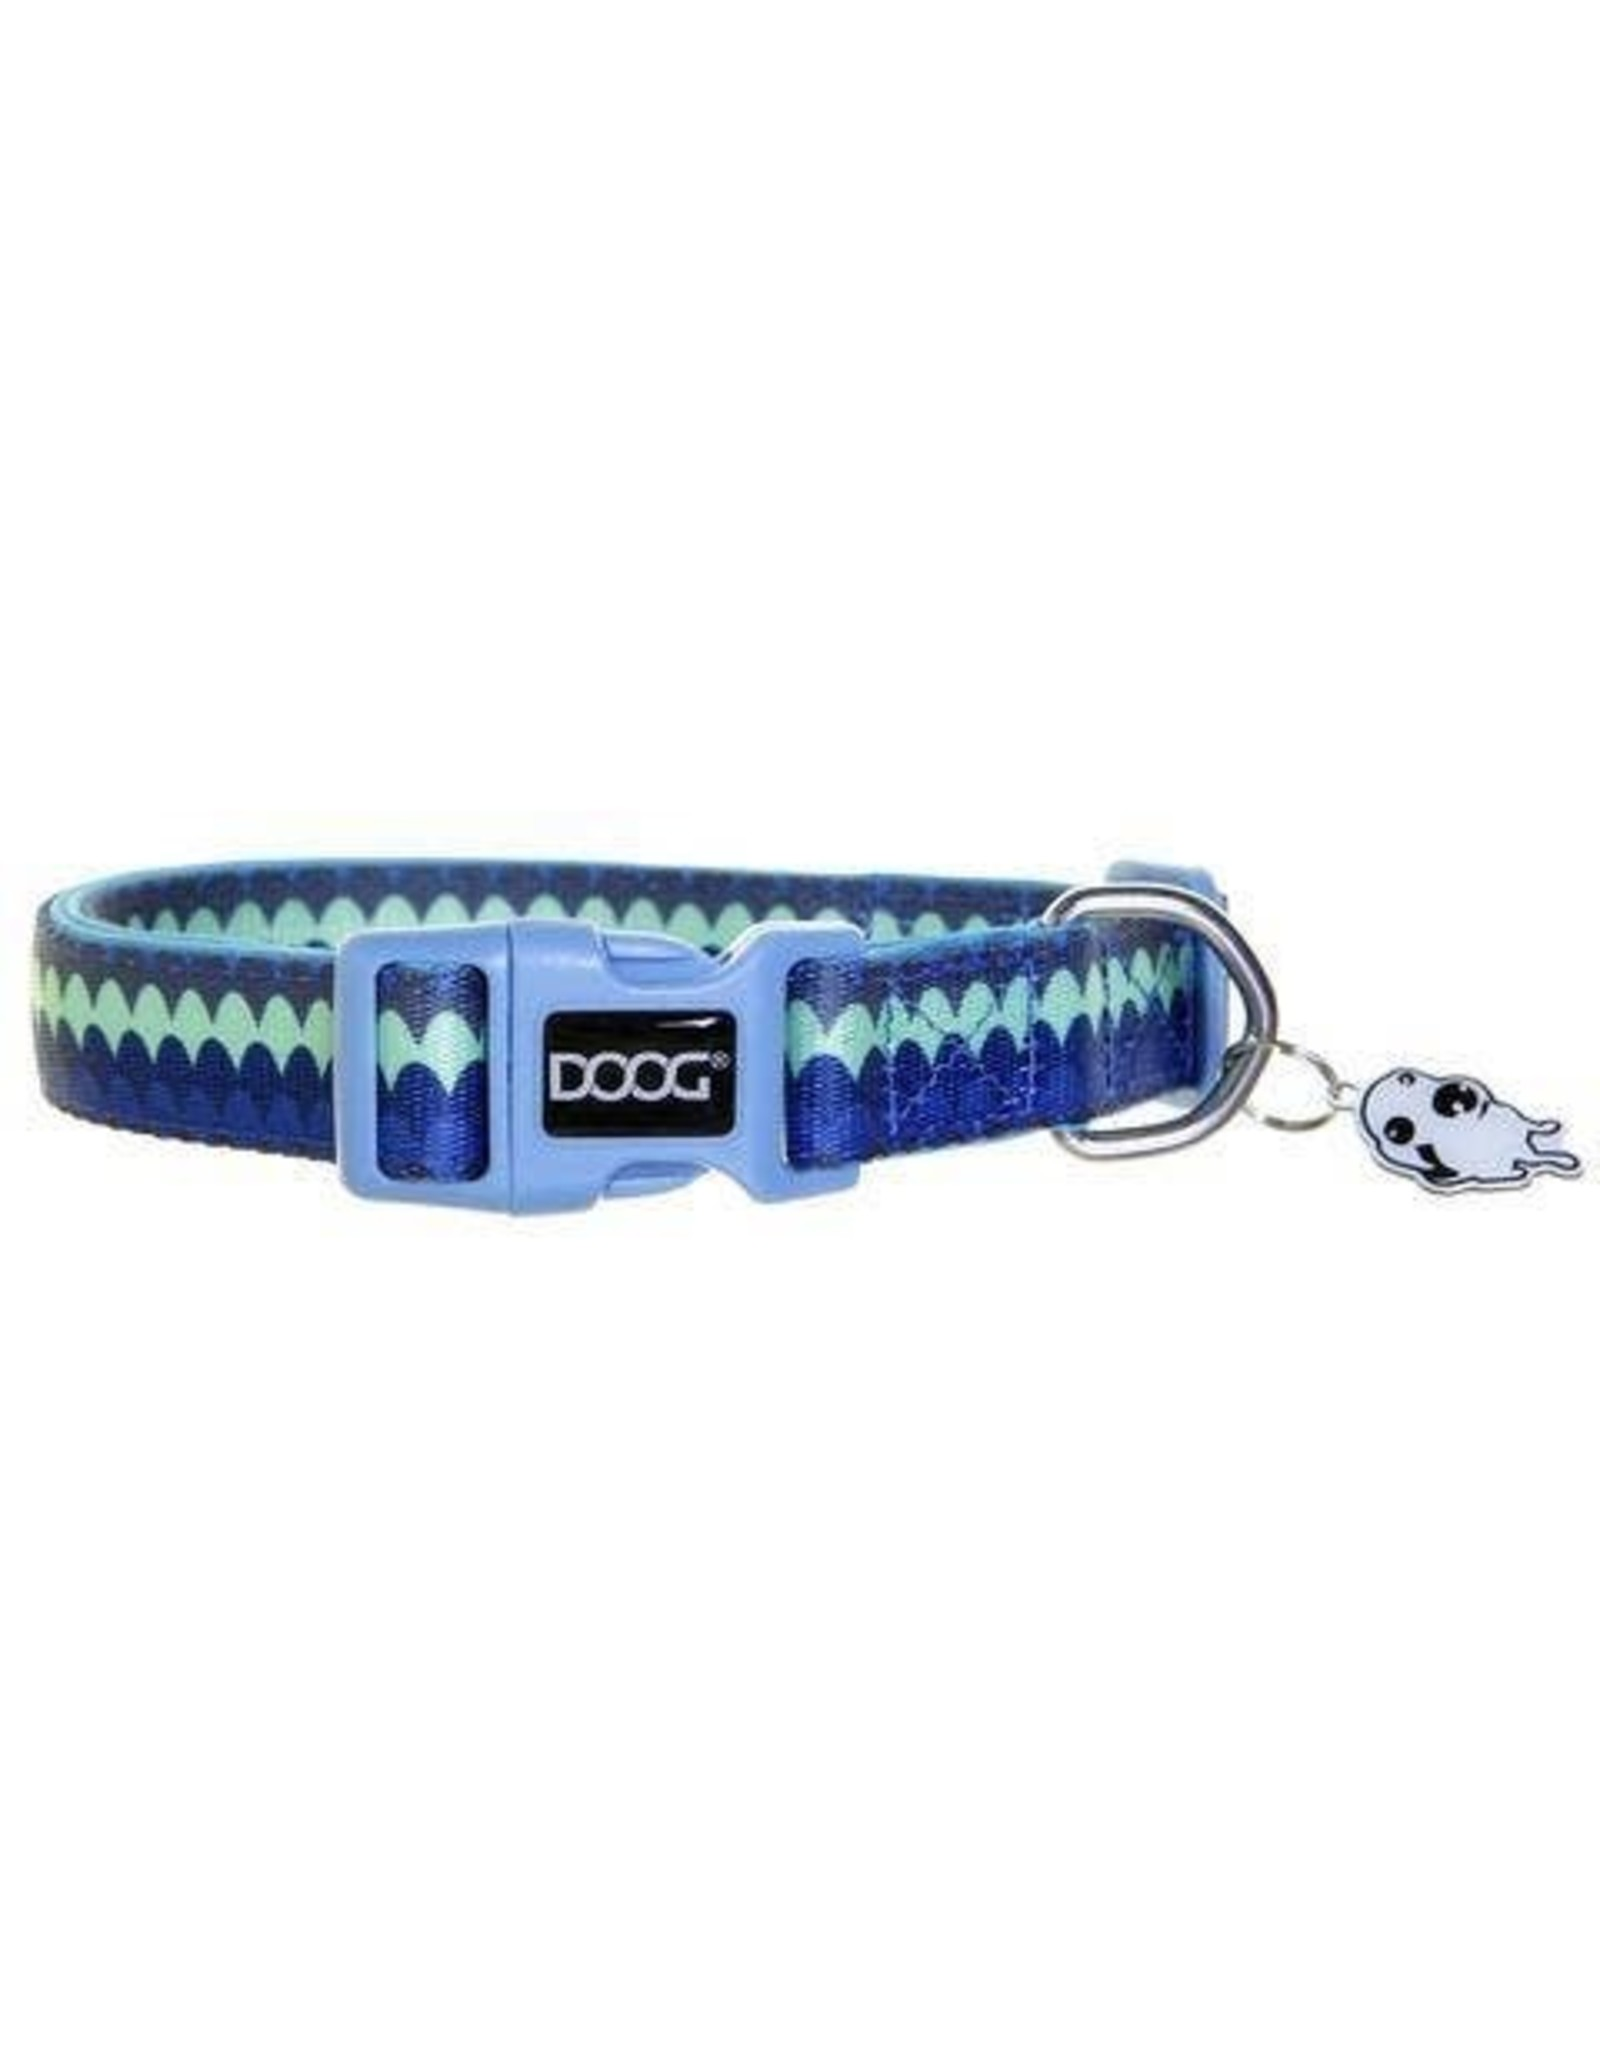 DOOG INC NEOPRENE DOG COLLAR - PLUTO M